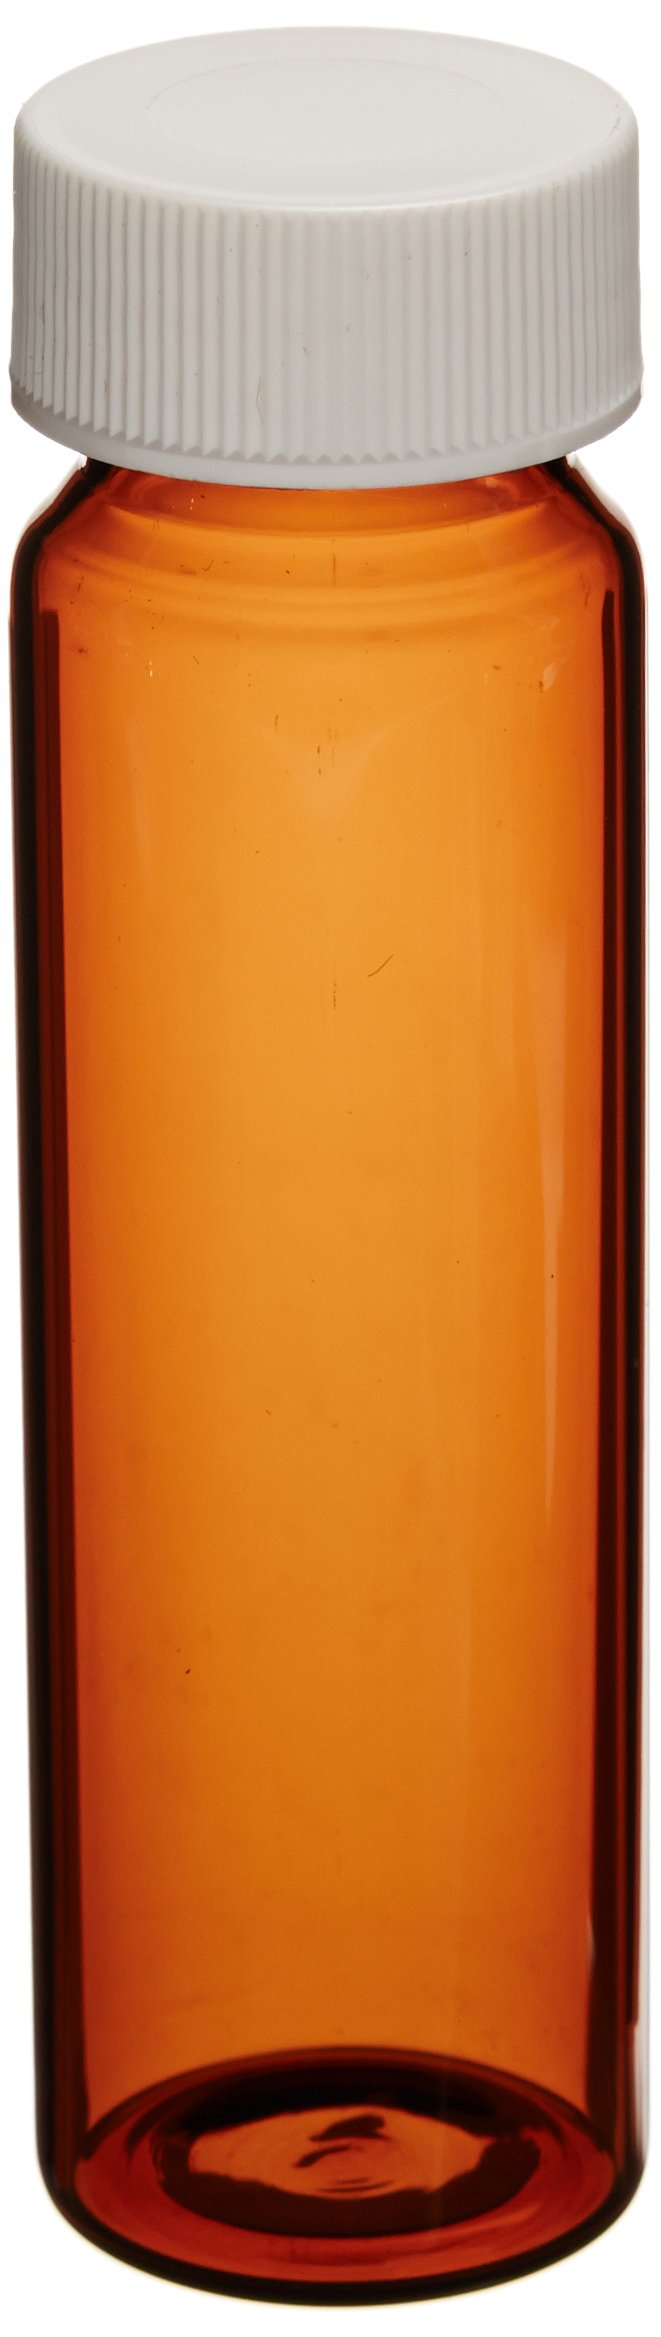 JG Finneran 9A-089 Amber Borosilicate Glass Standard VOA Vial with White Polypropylene Solid Top Closure and PTFE Lined, 24-400mm Cap Size, 40mL Capacity (Pack of 100)